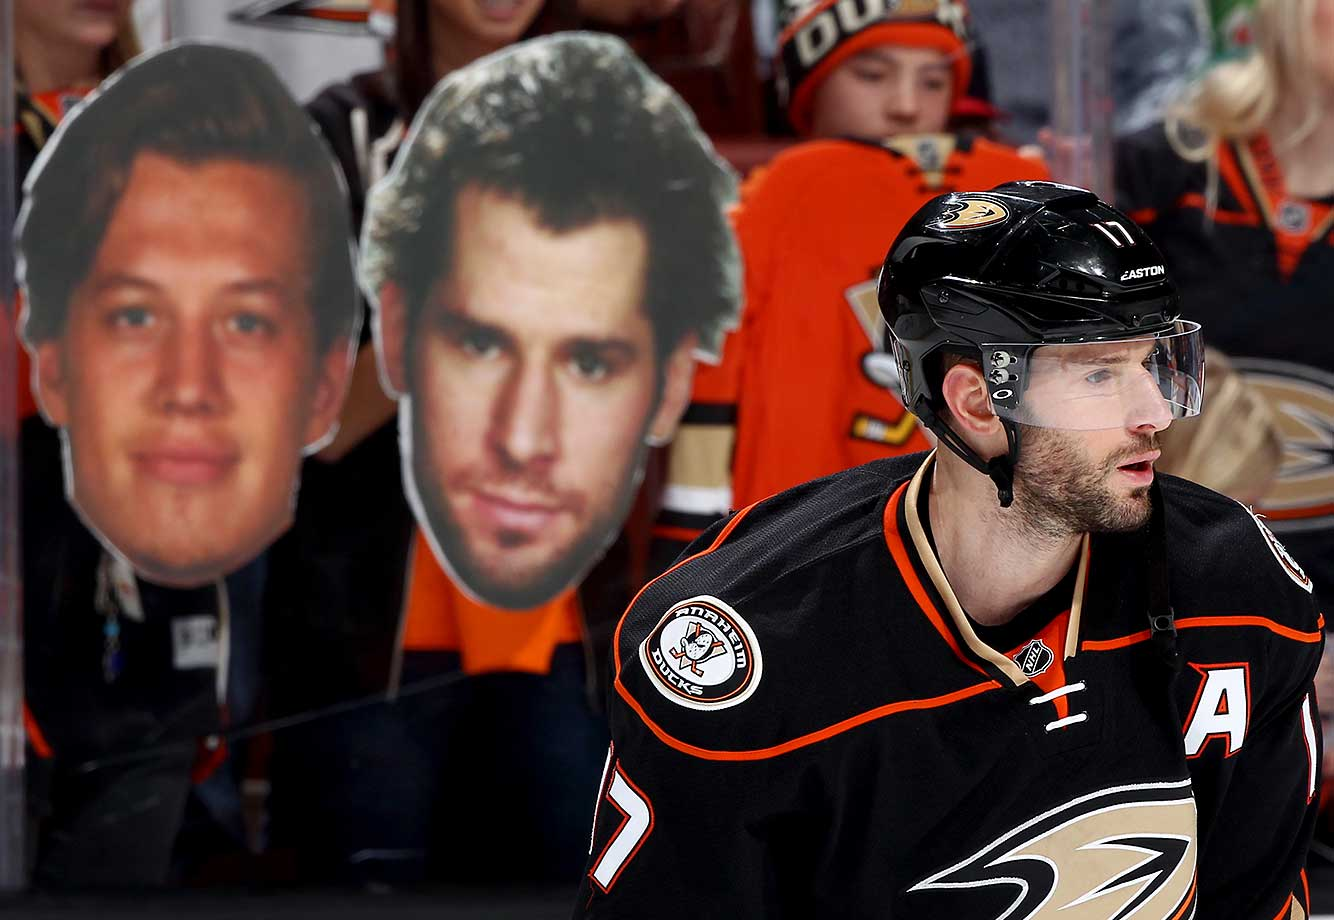 Ryan Kesler of the Anaheim Ducks skates during warmups before the game against the Minnesota Wild at Honda Center in Anaheim.